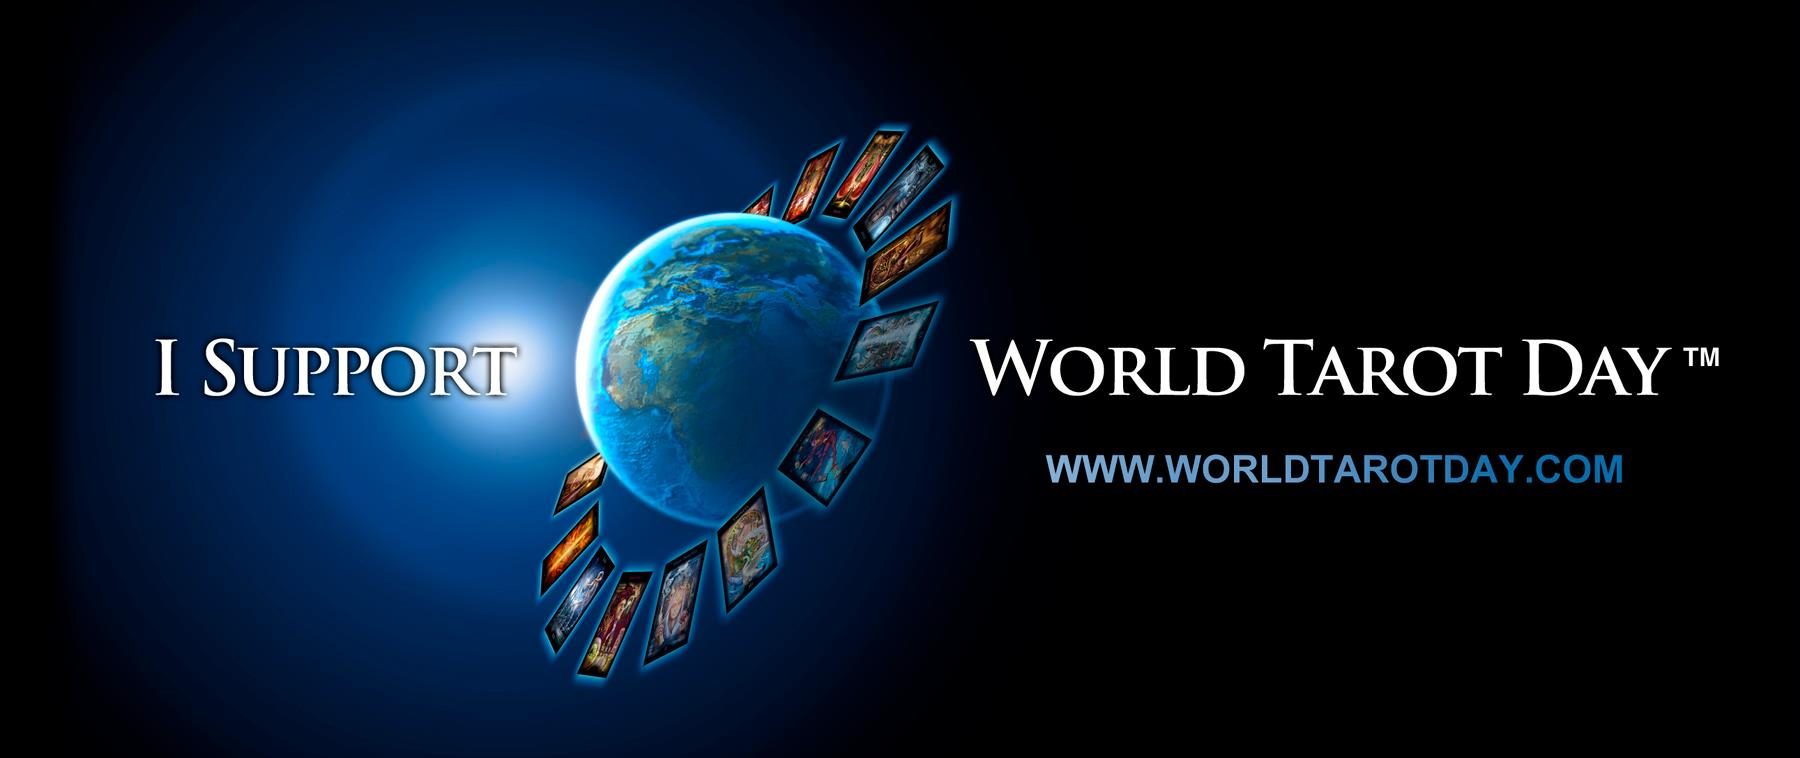 Celebrating World Tarot Day! 50% off Tarot readings and services purchased today!